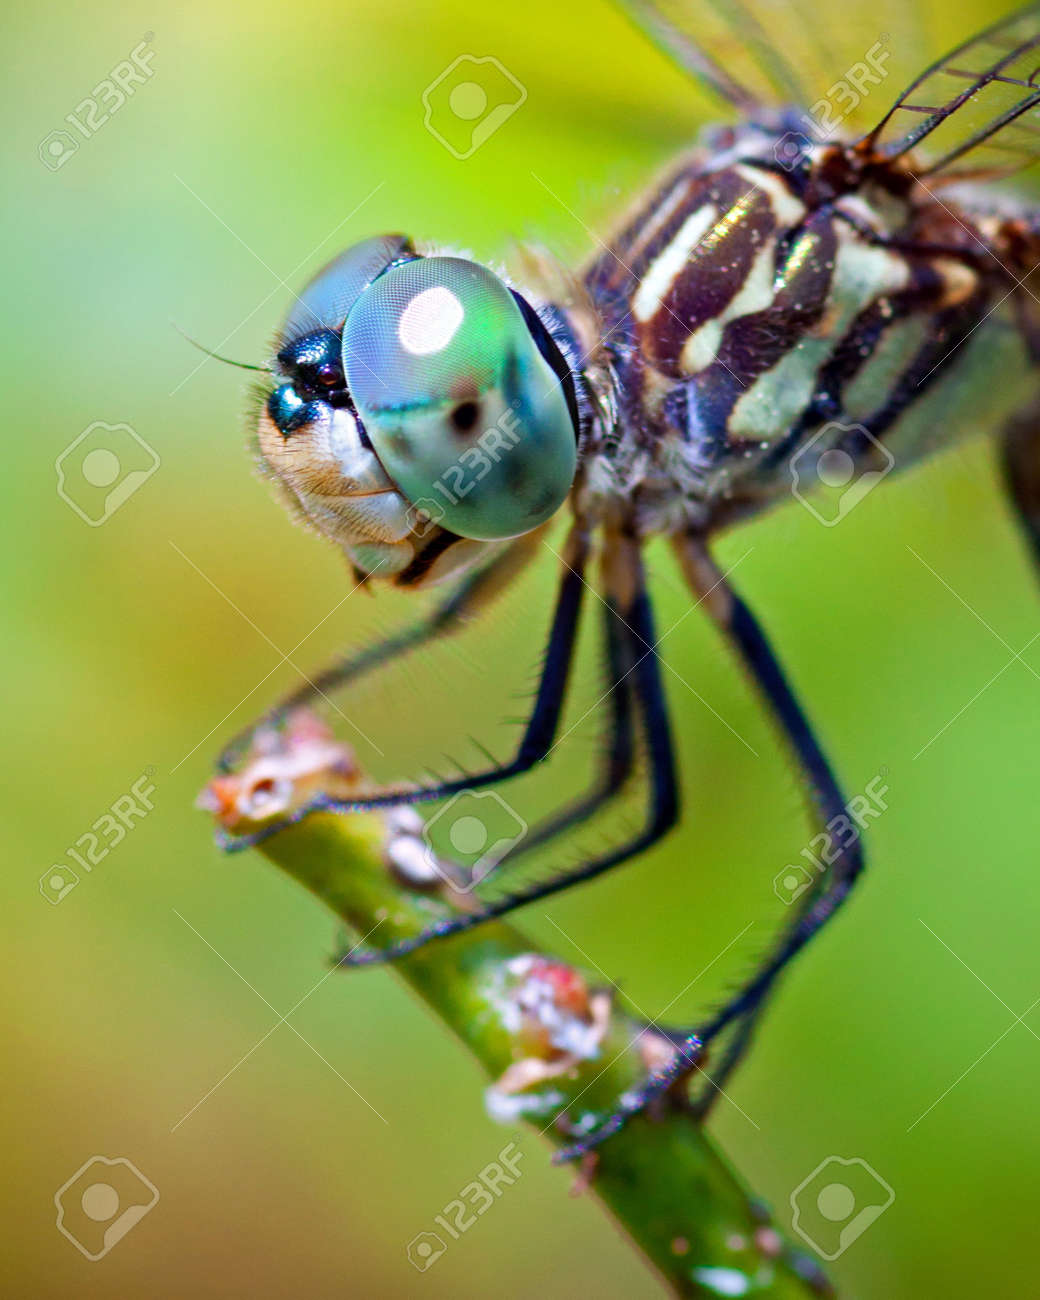 Close-Up View of Mechanical Dragonfly with Multifaceted Eyes Gears Body Print Background for Photography Kids Adult Photo Booth Video Shoot Vinyl Studio Props Dragonfly 8x10 FT Photography Backdrop